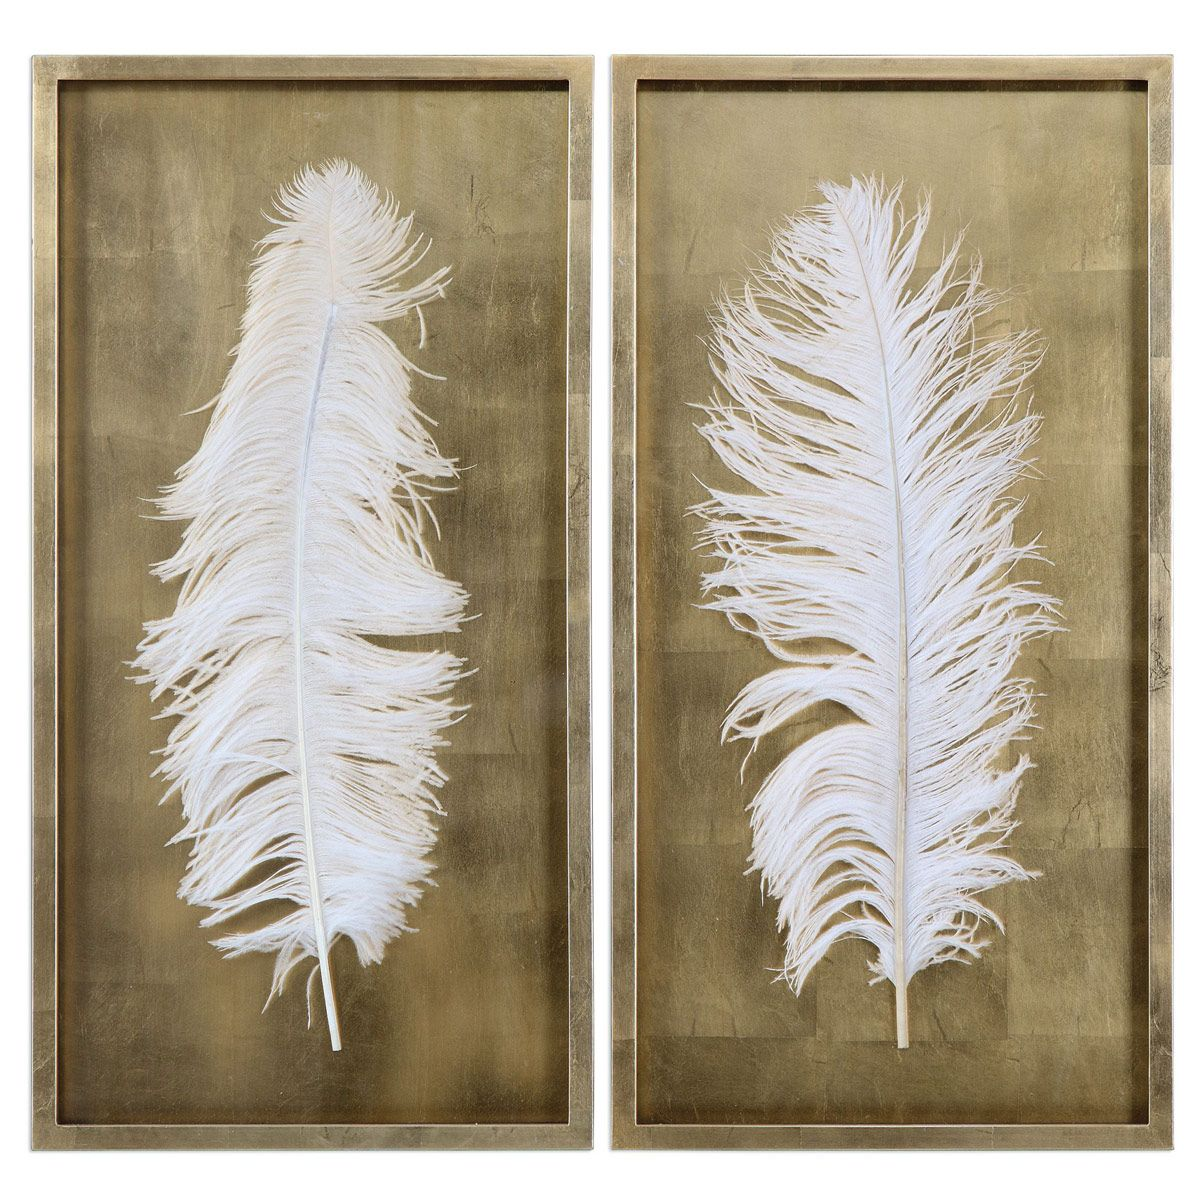 White Feathers Shadow Boxes - Set of 2